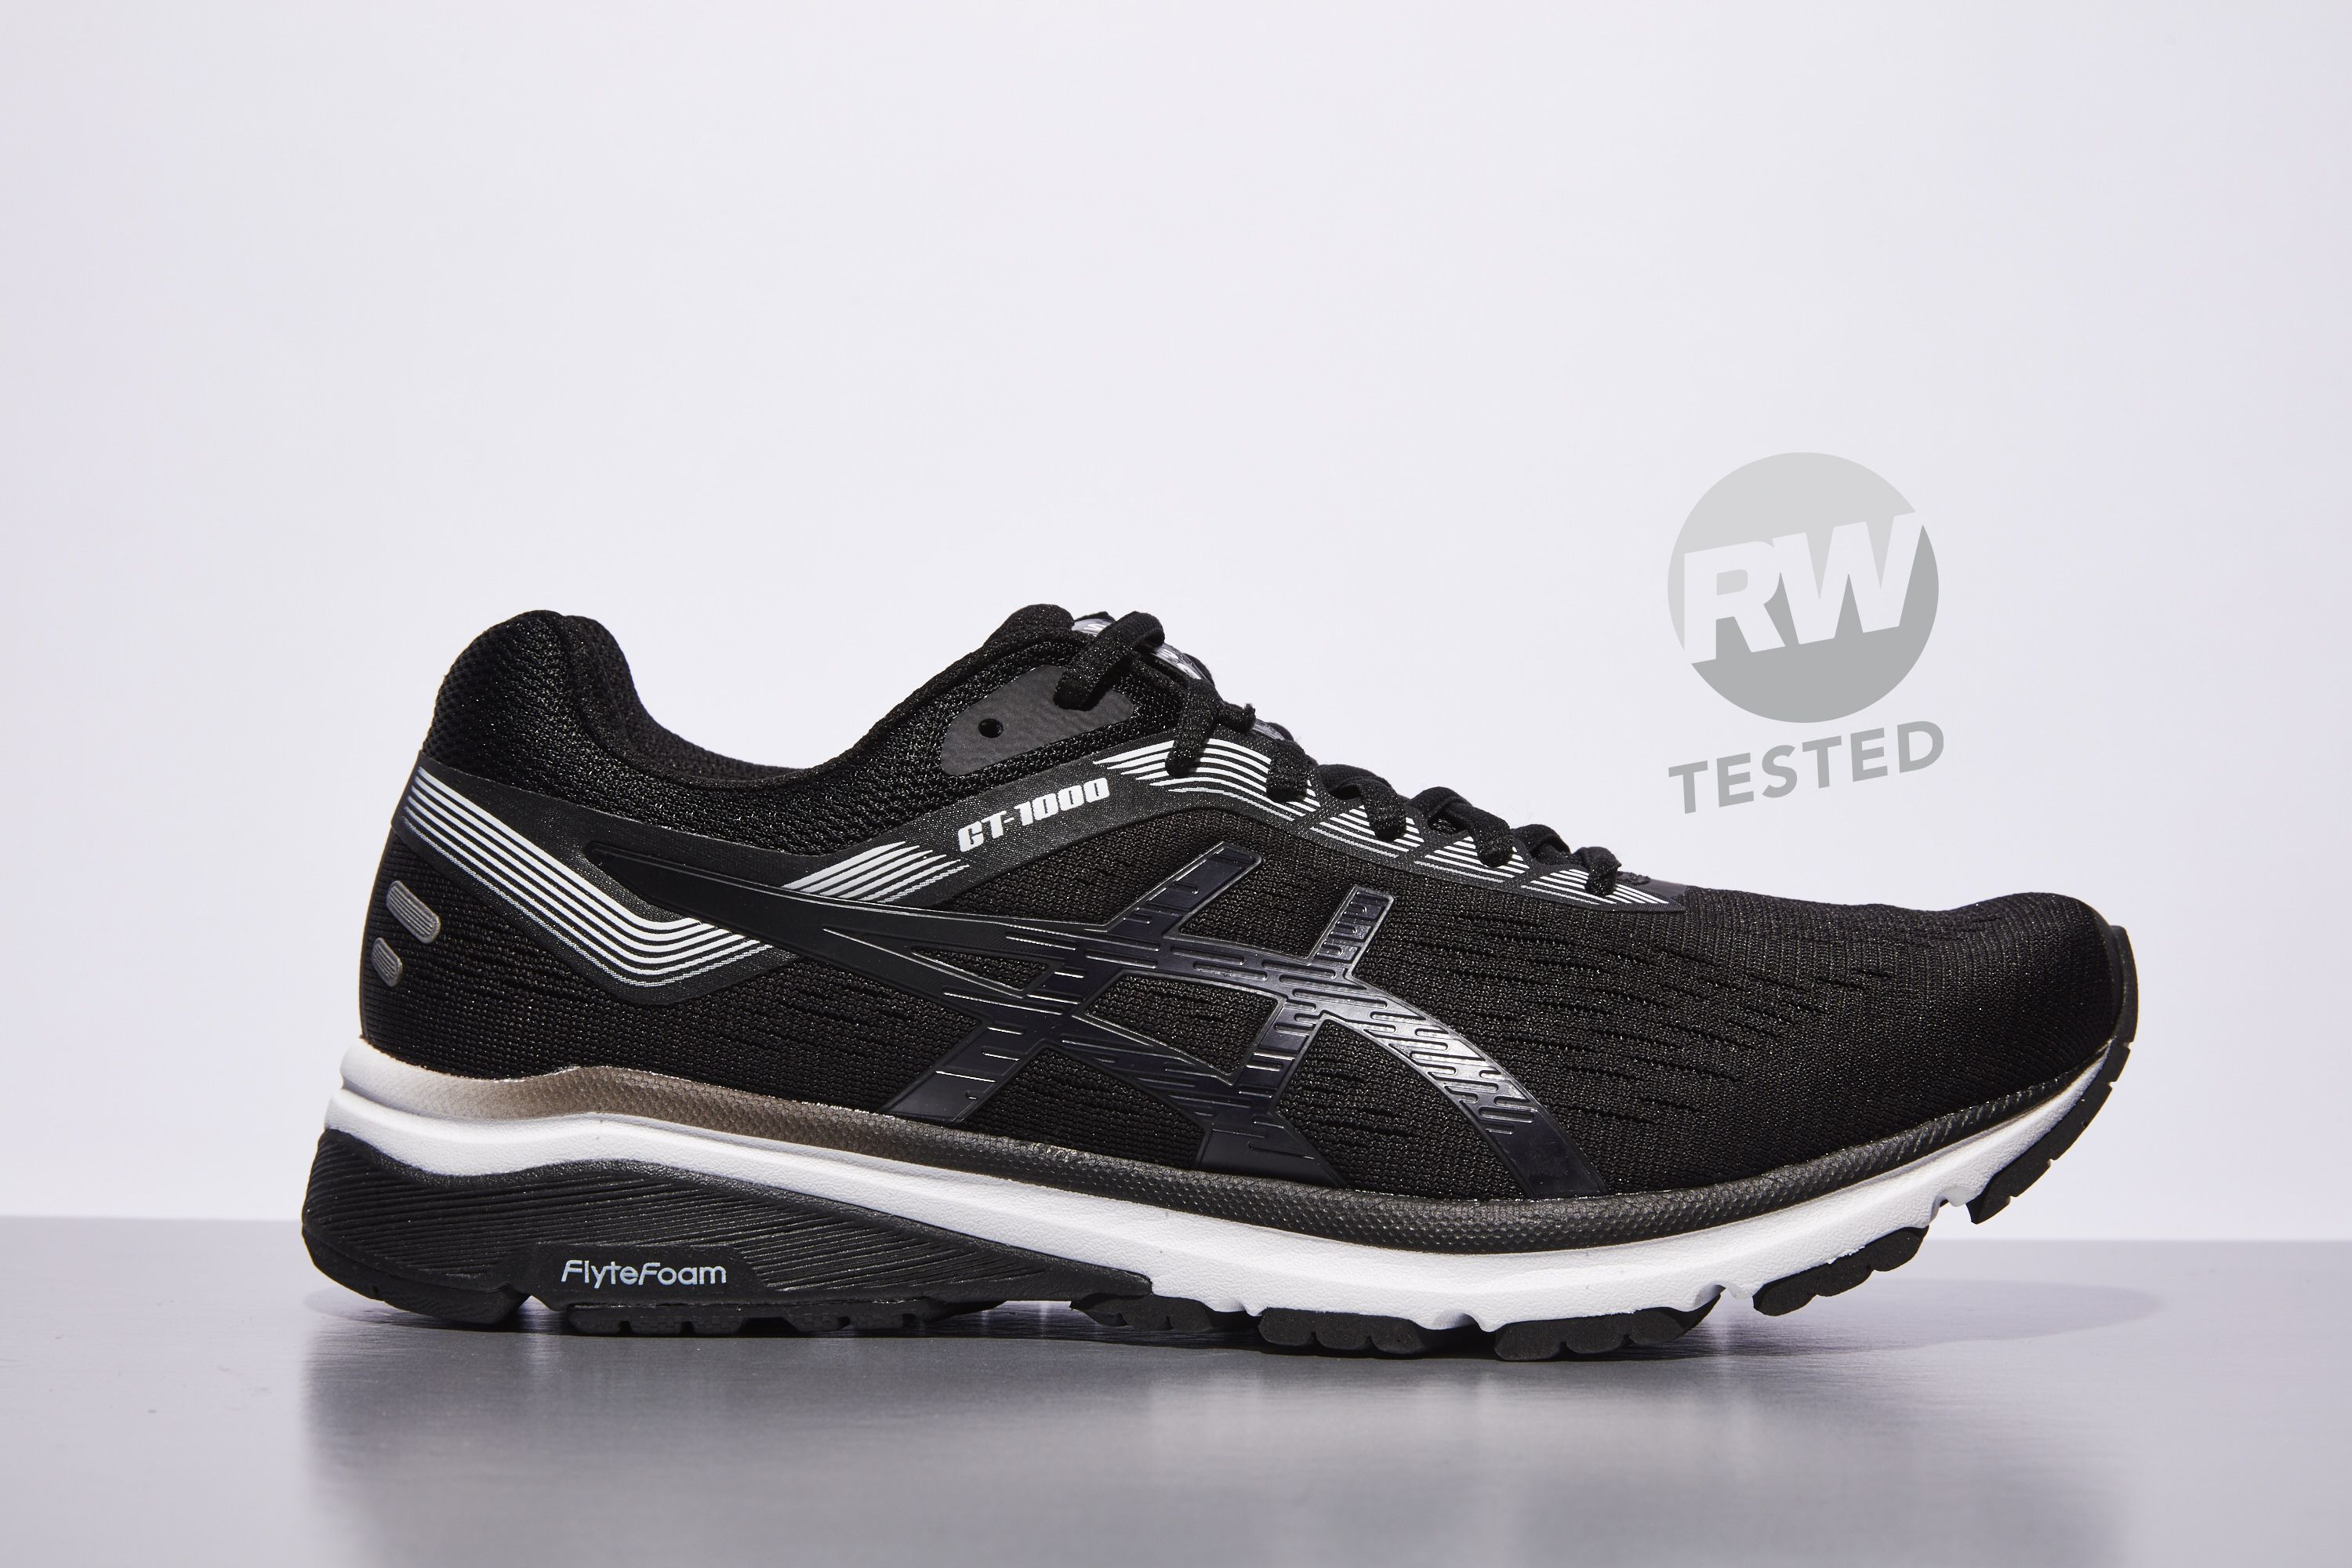 Asics GT-1000 7 Review | Stability Shoes